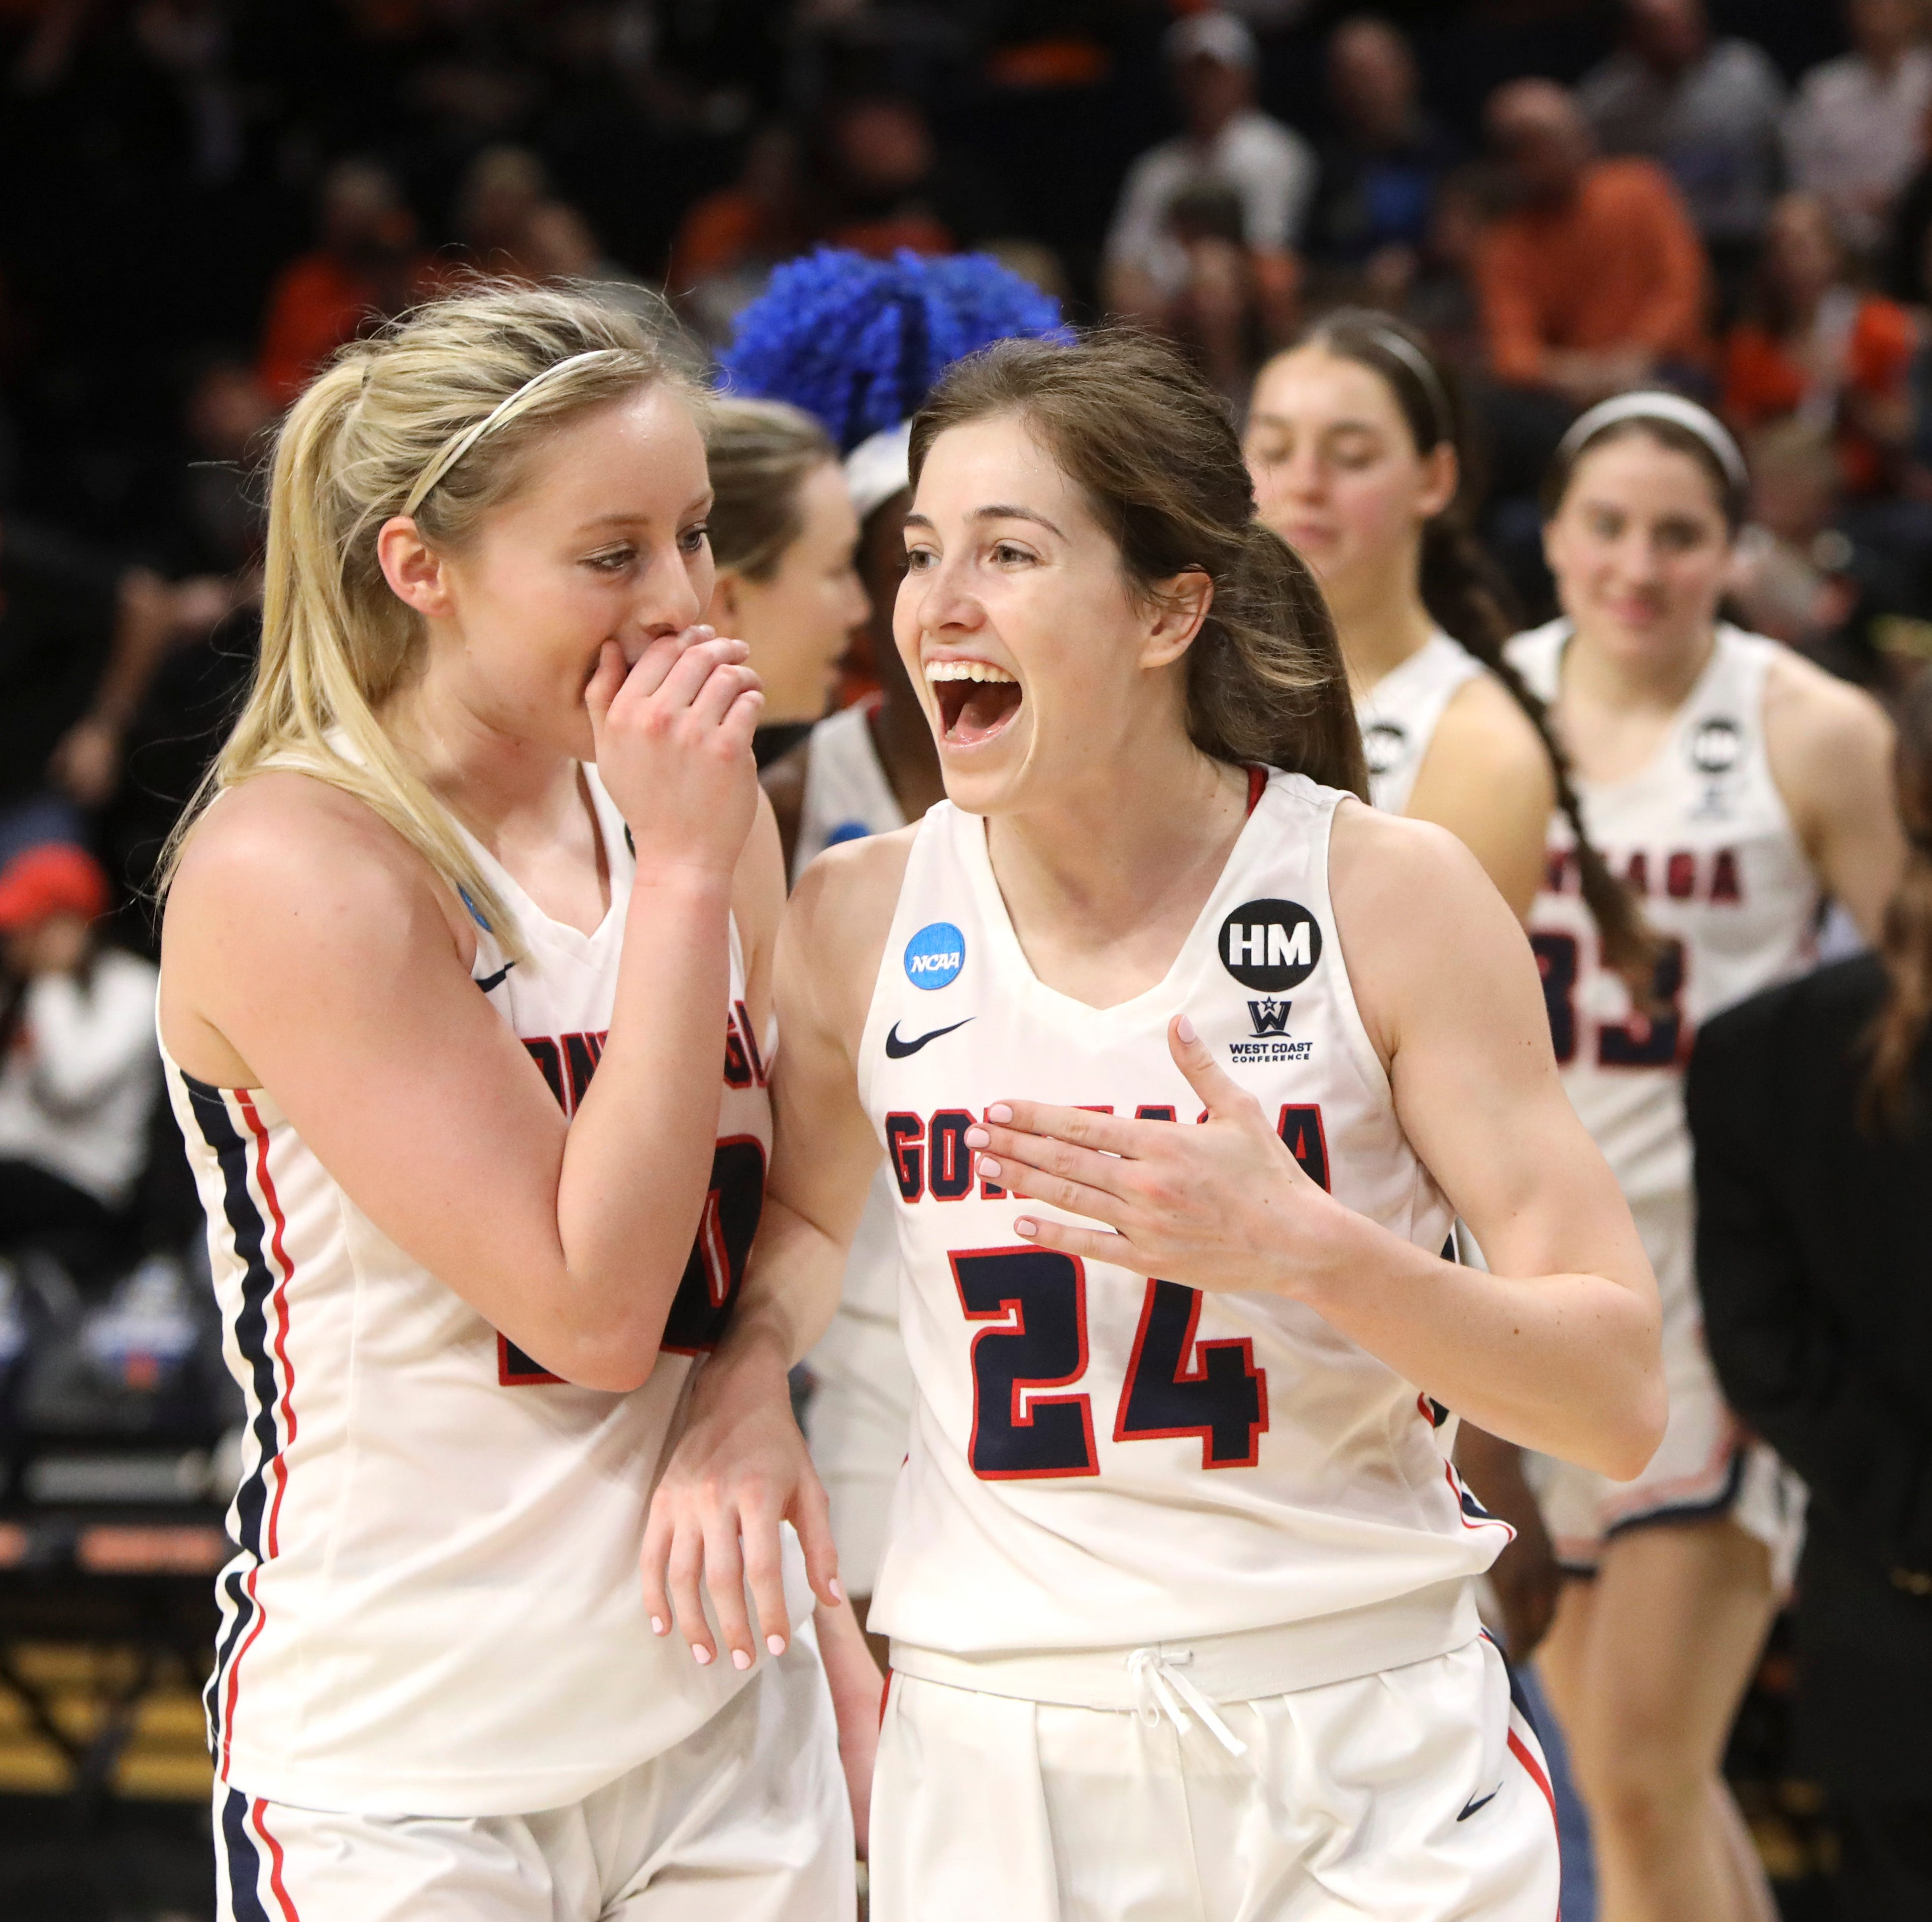 Local chatter: Katie Campbell continues to thrive at Gonzaga despite hectic schedule